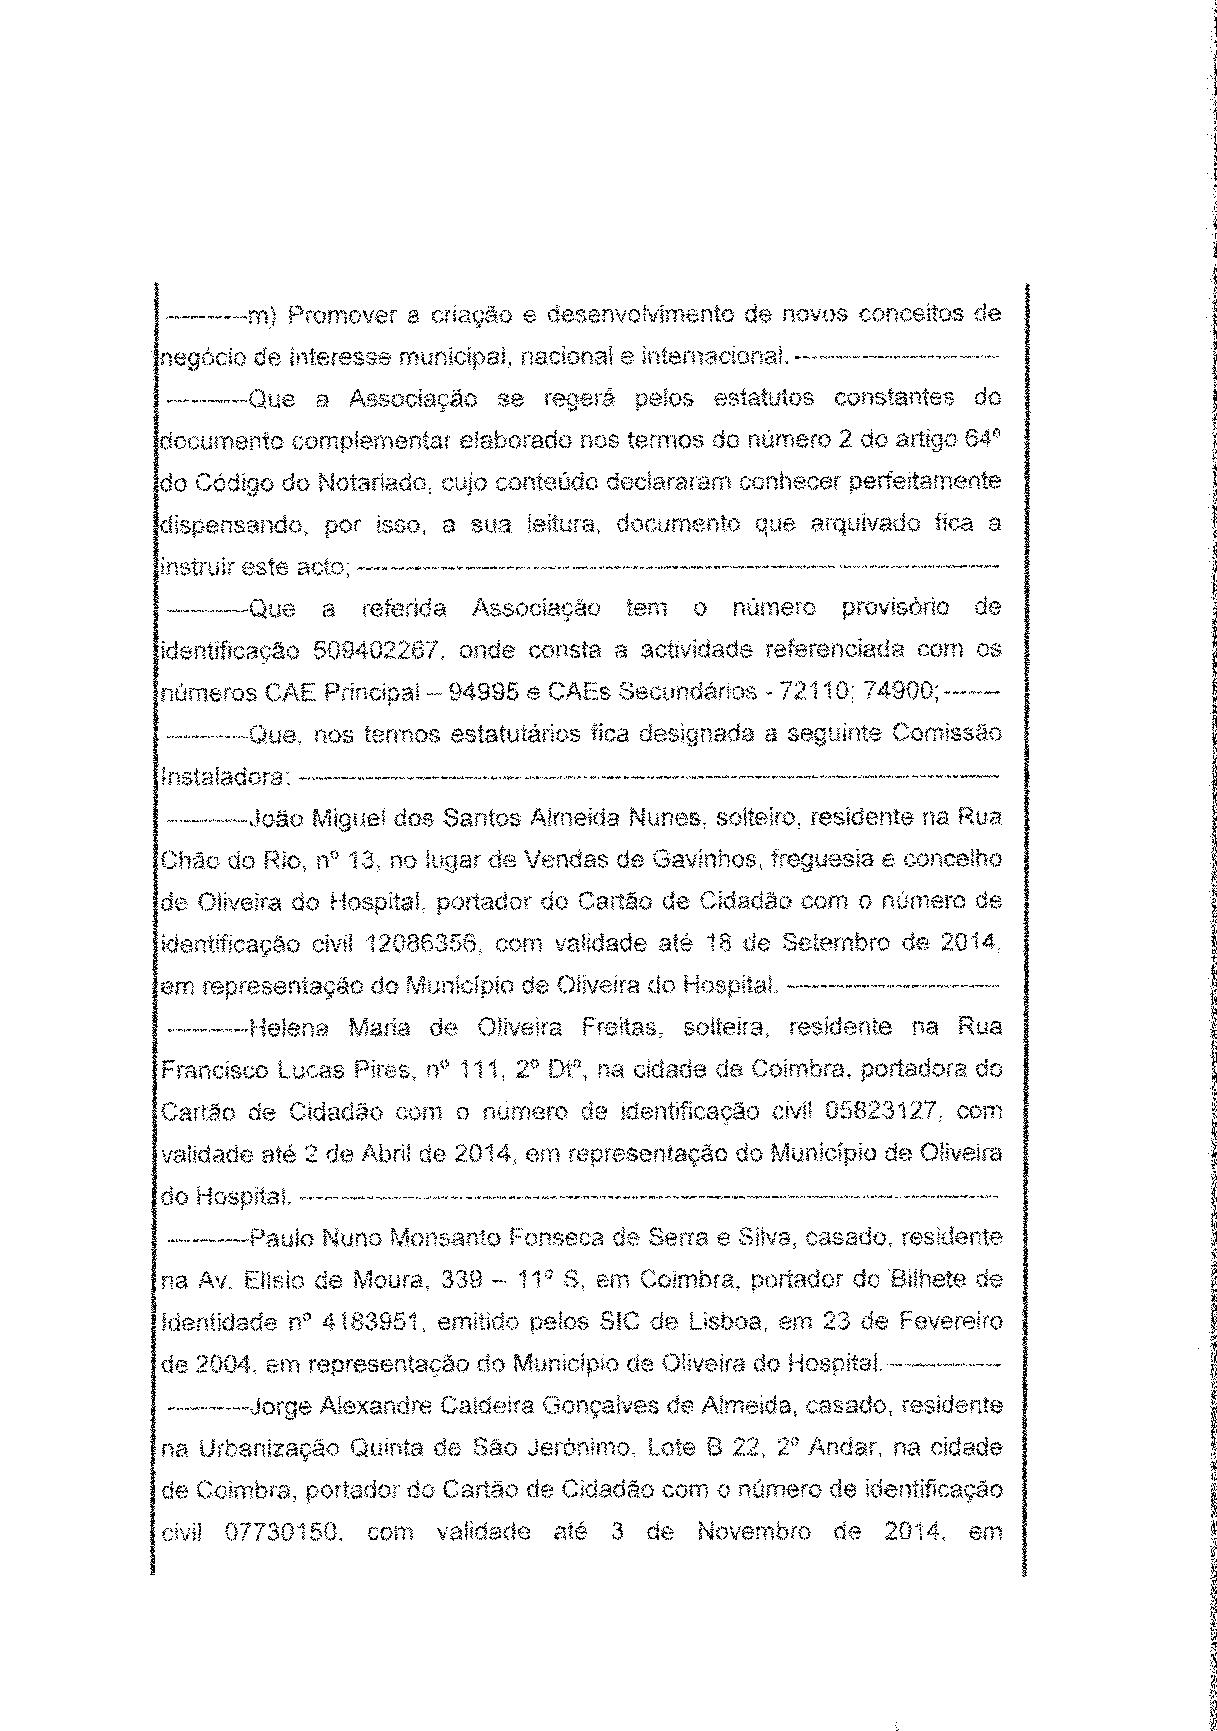 509402267_Associacao_BLC_rectificacao (5)-page-004